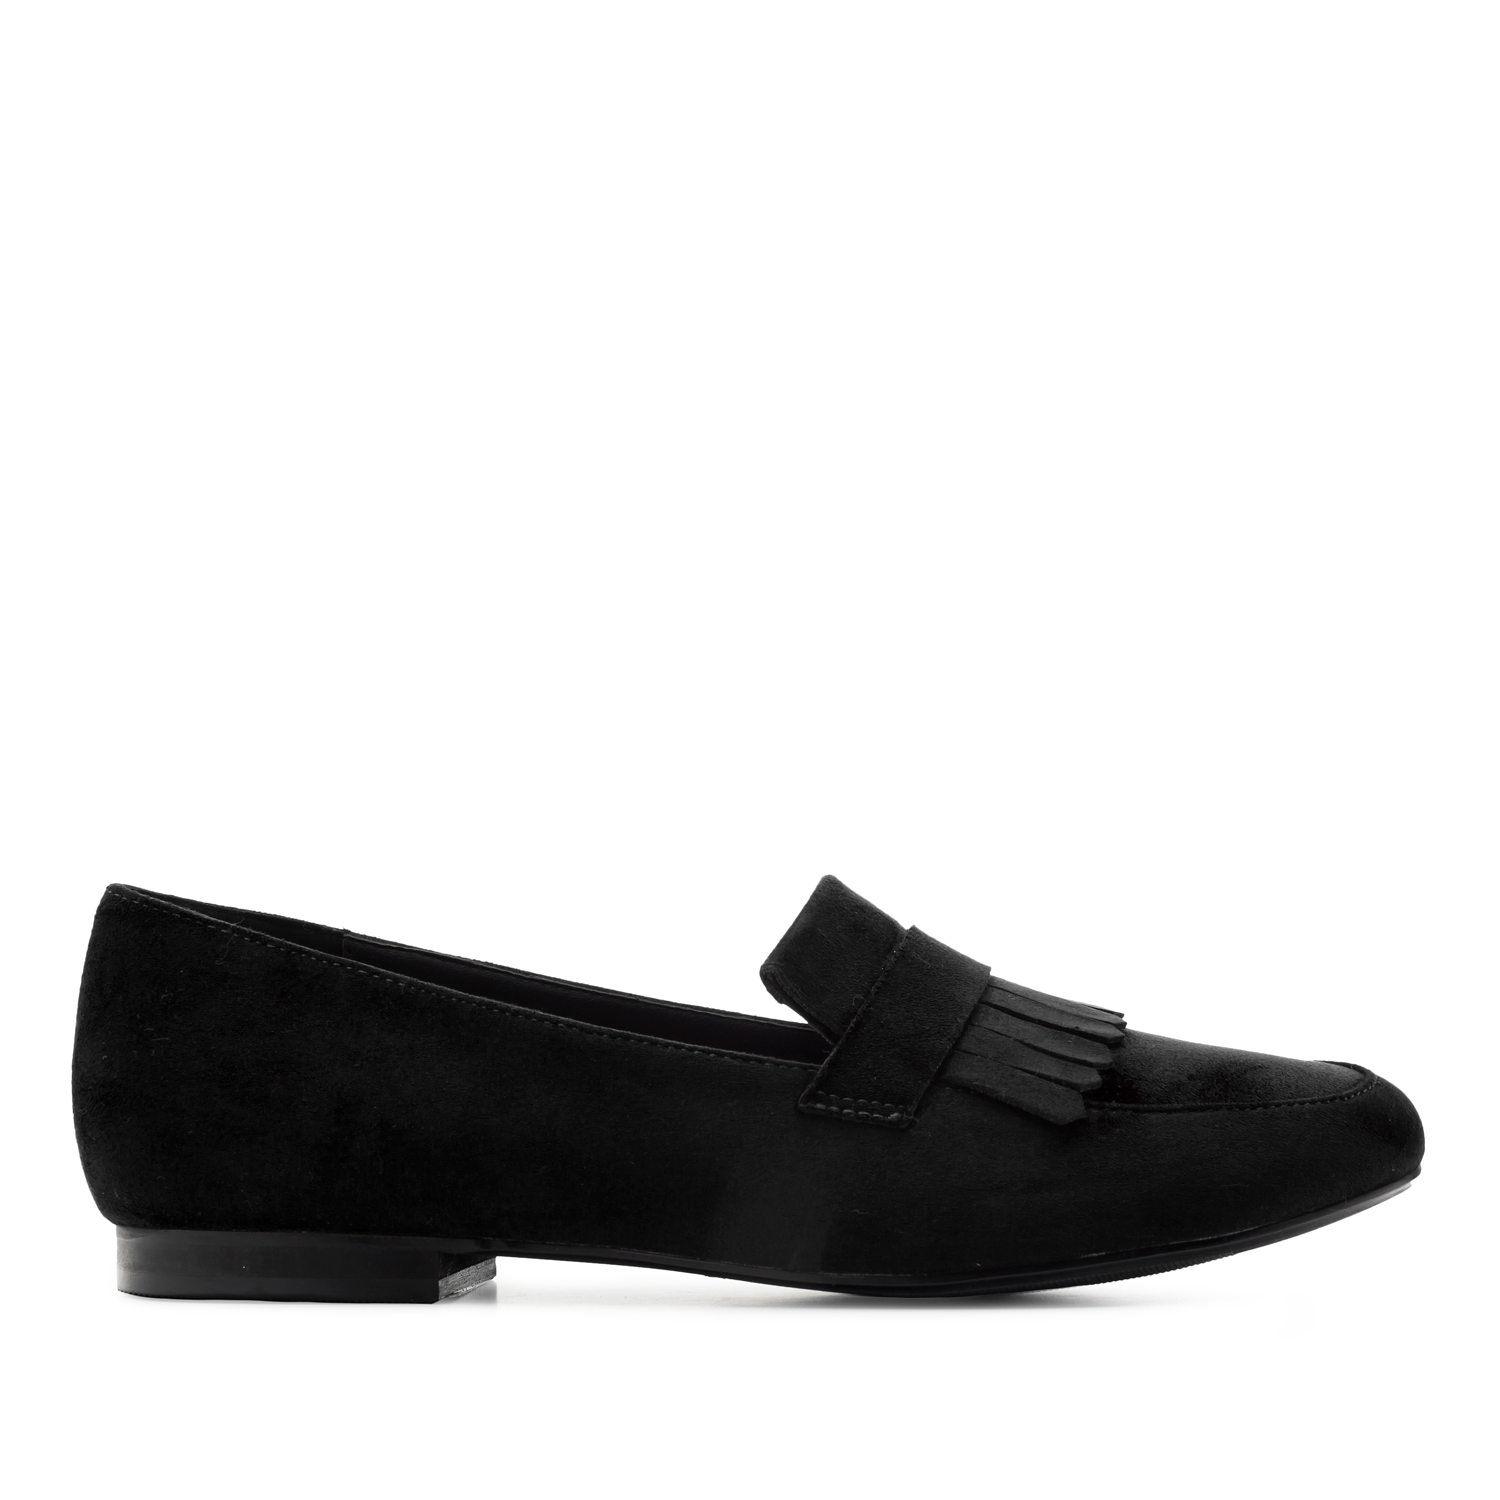 Mustat hapsu loaferit